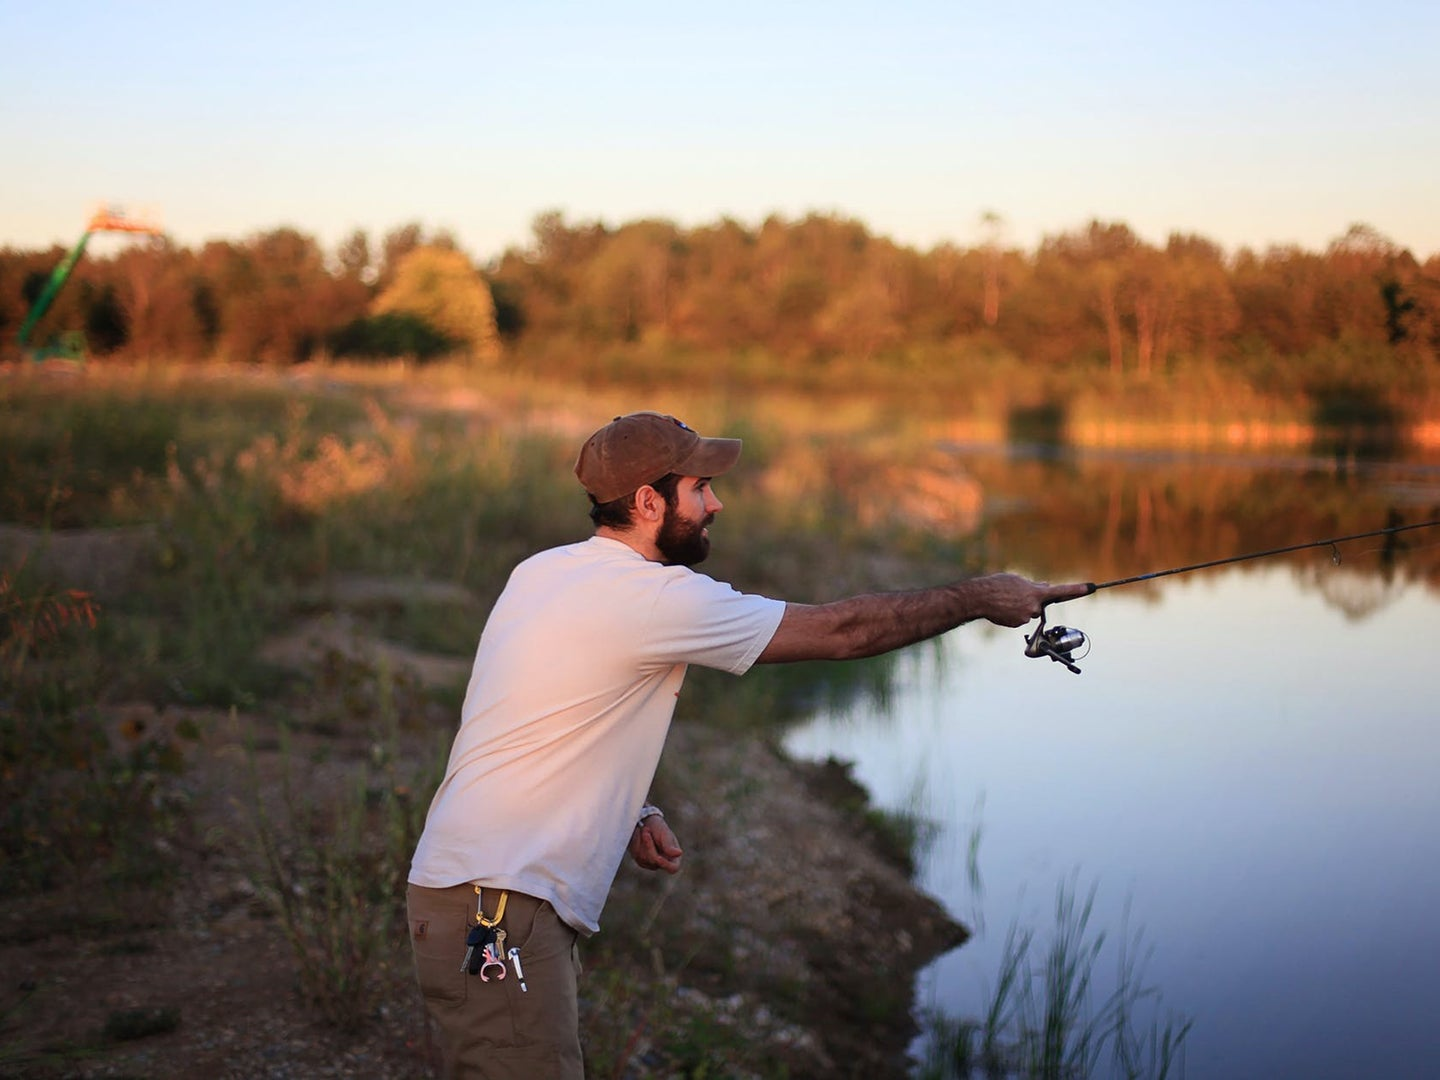 man casting out fishing rod